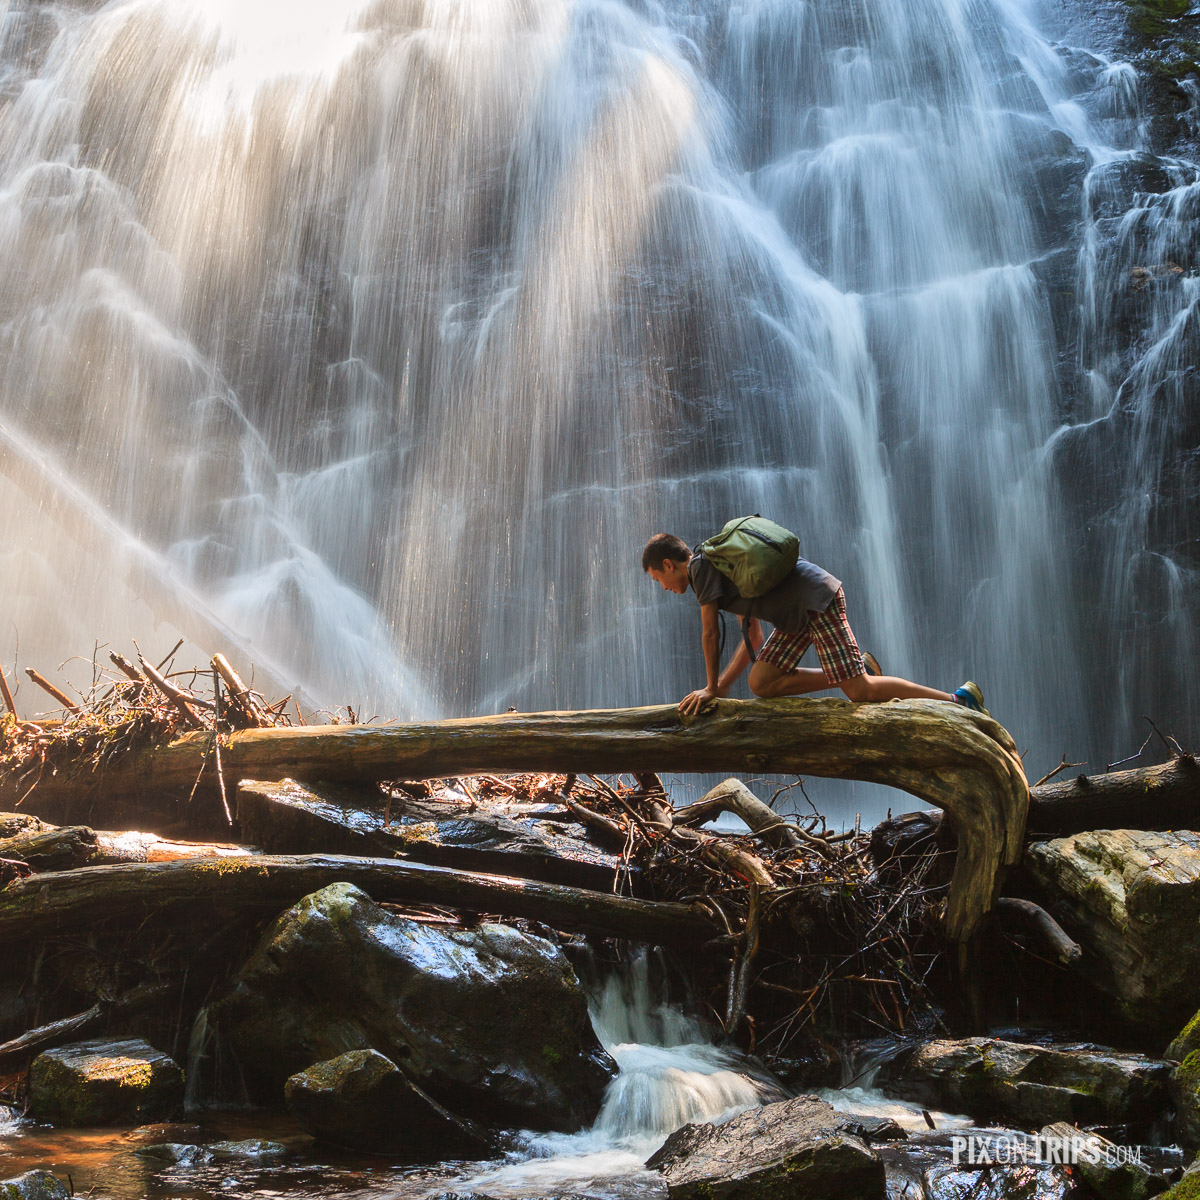 A teenager boy attempting to crawl cross a tree log in front of Crabtree Falls - Pix on Trips